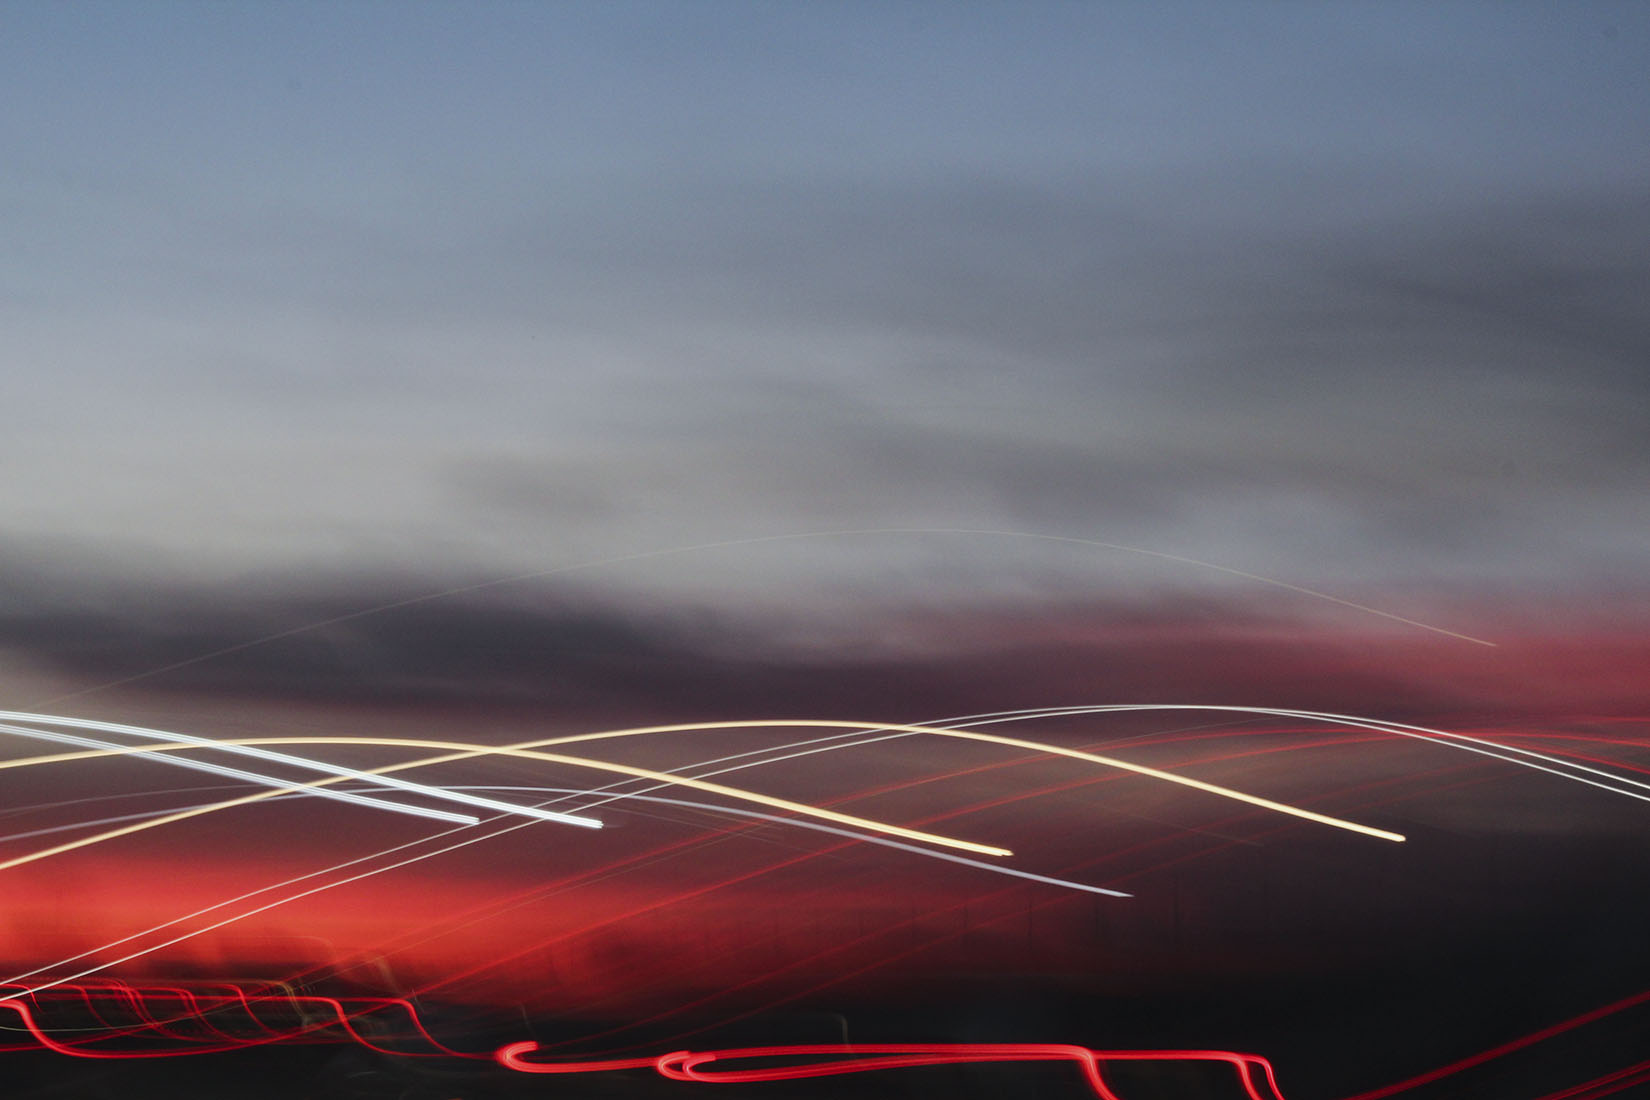 Light painting, sunset, highway, movement